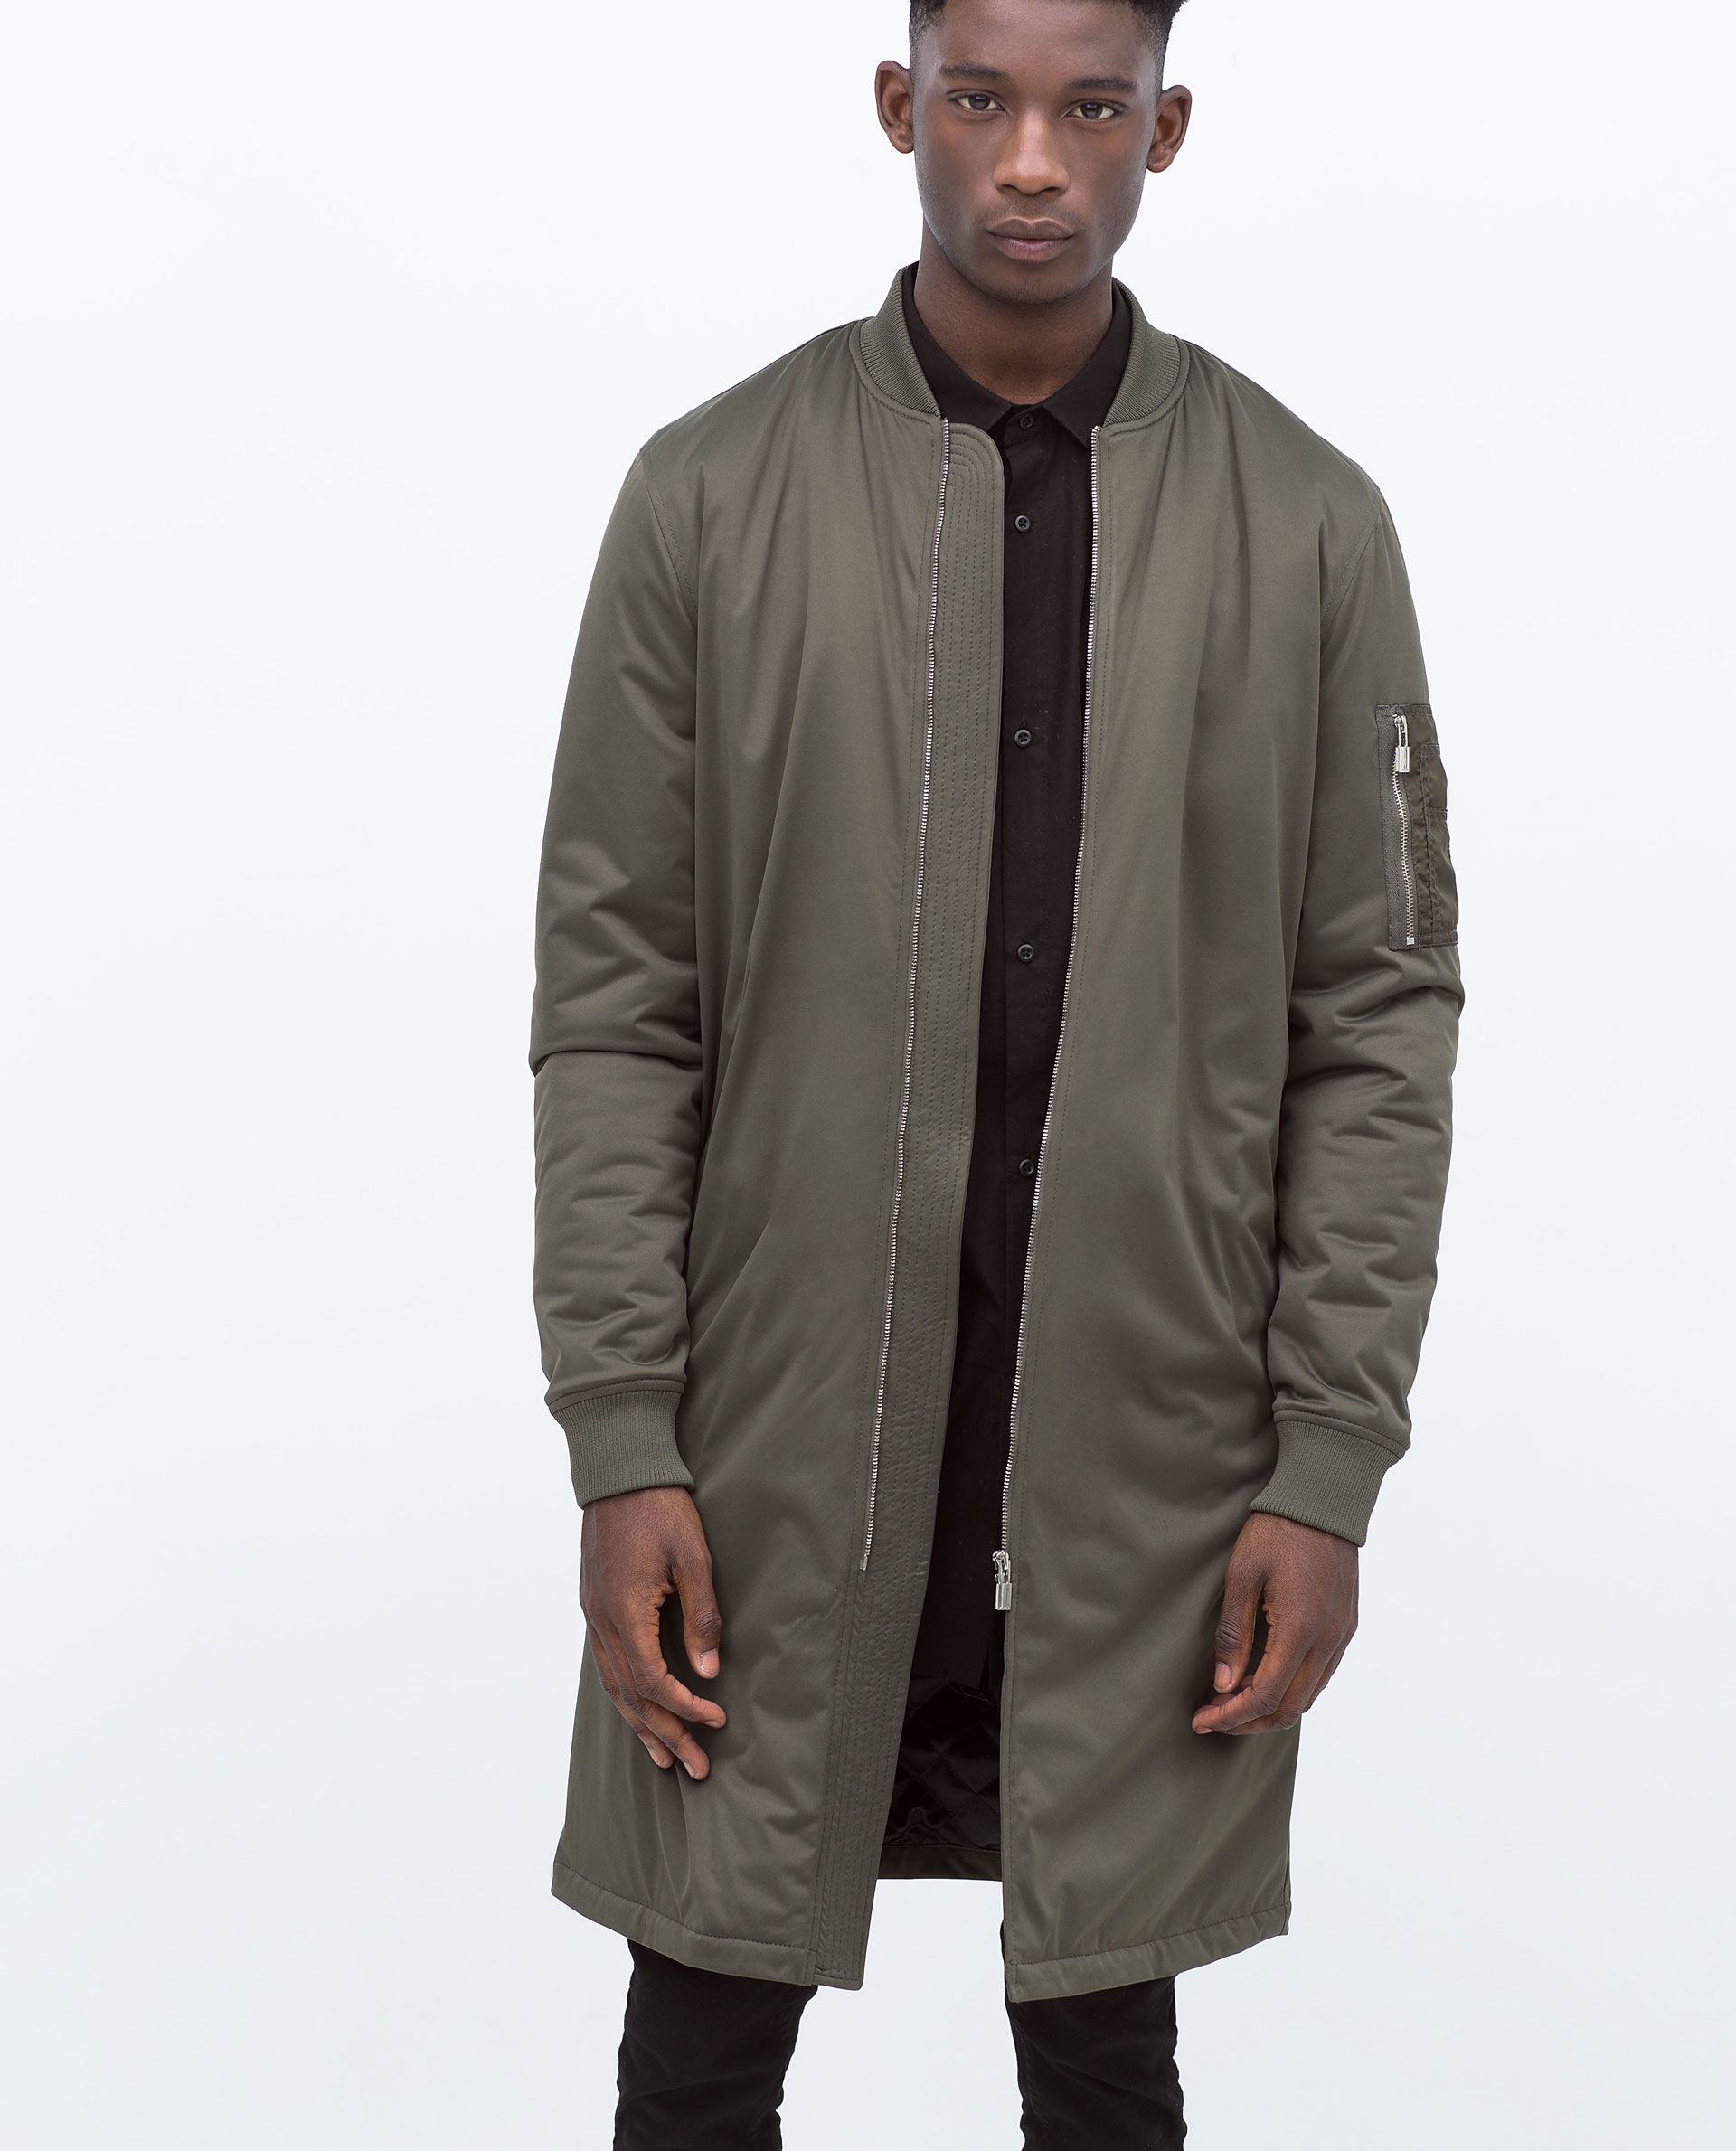 Long bomber jacket mens zara – Your jacket photo blog